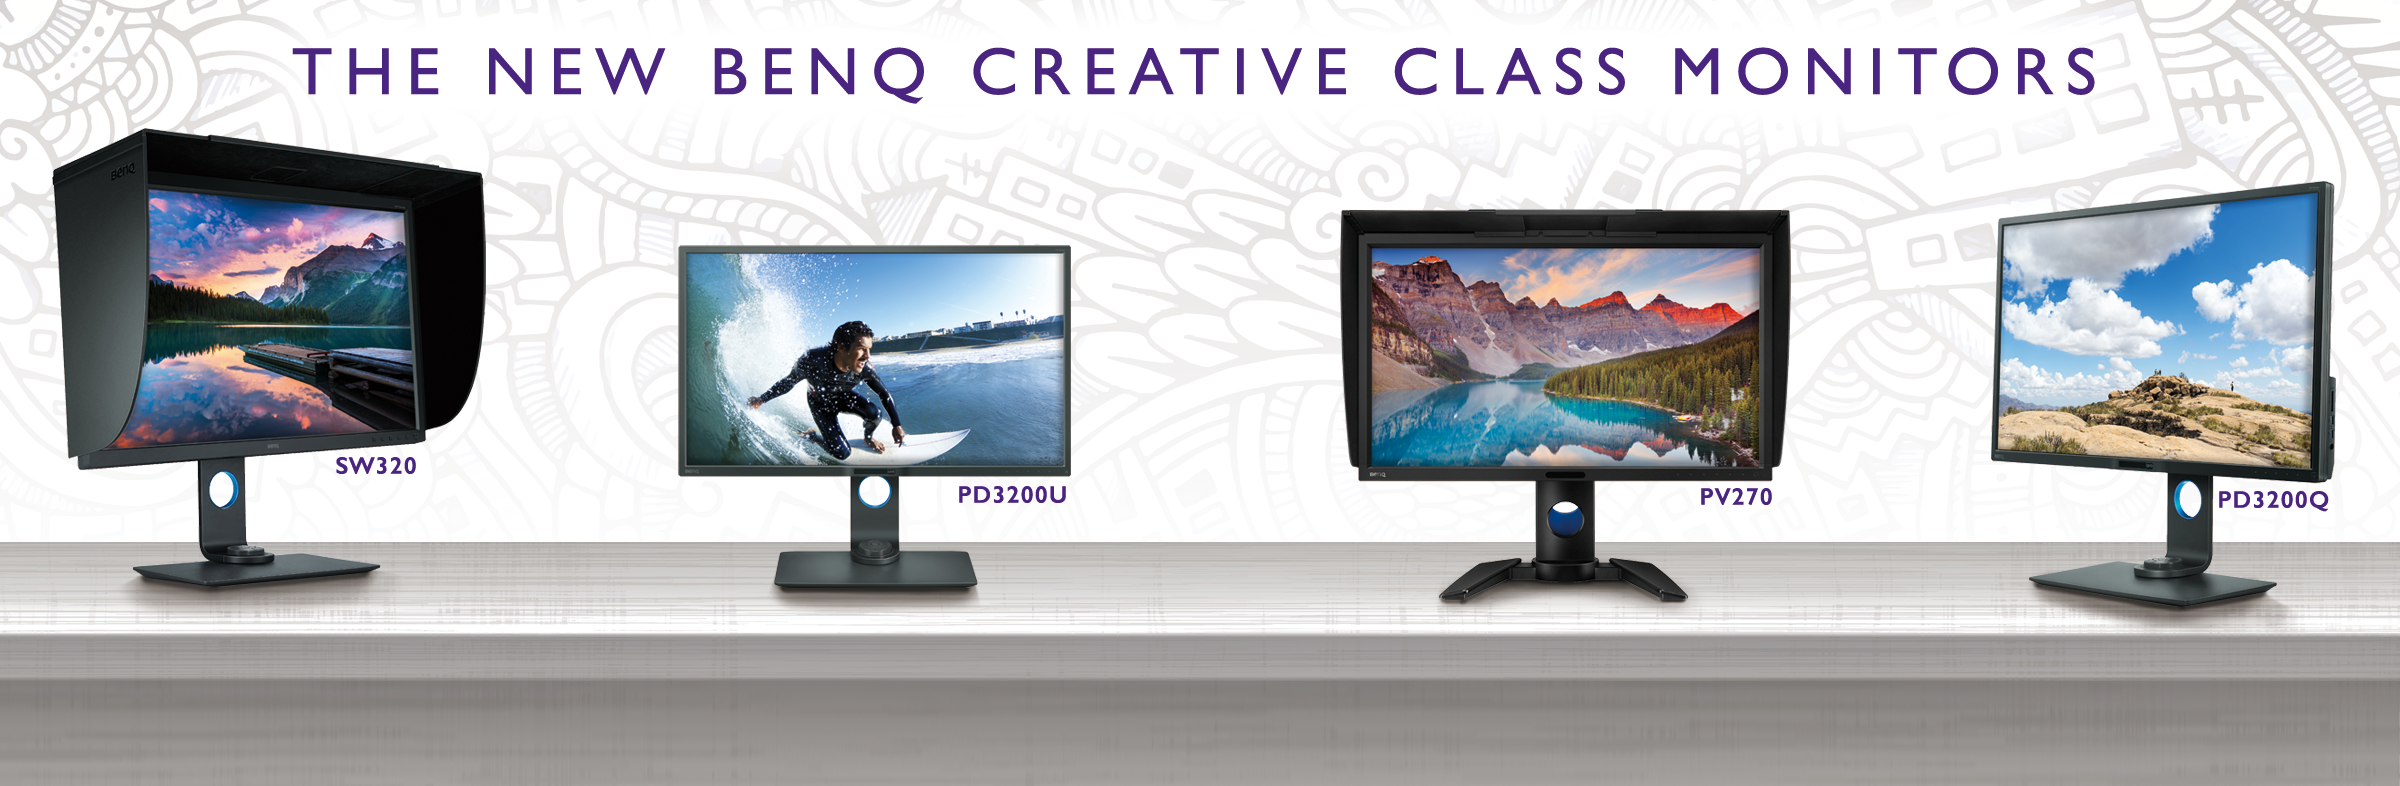 BenQ New Creative Class Monitors